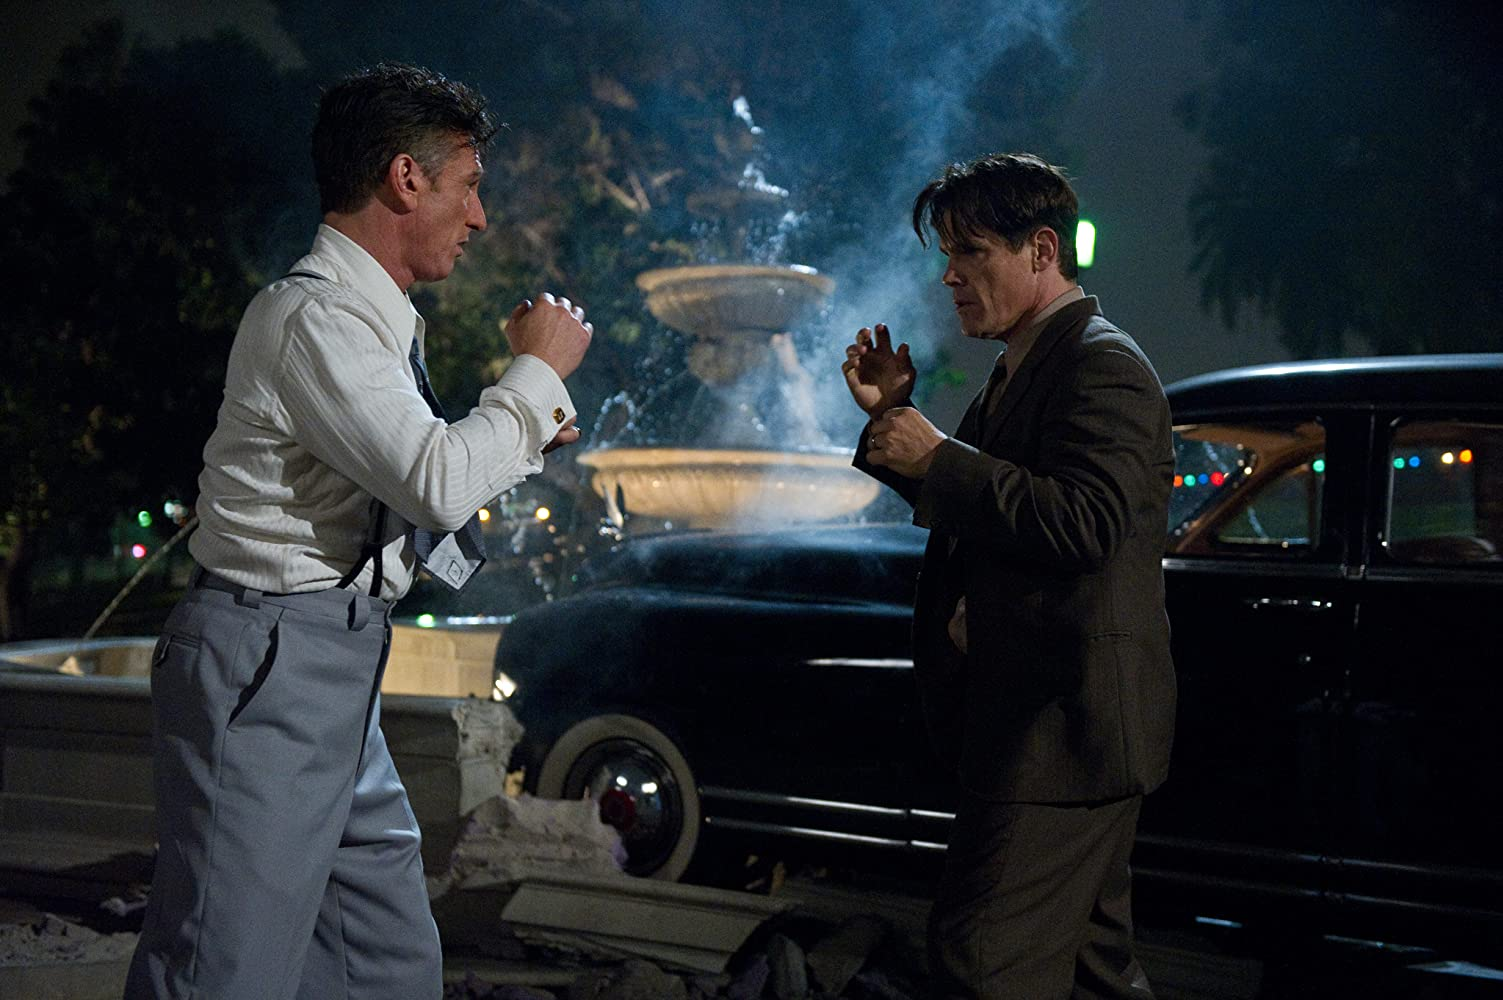 Sean Penn and Josh Brolin in Gangster Squad (2013)